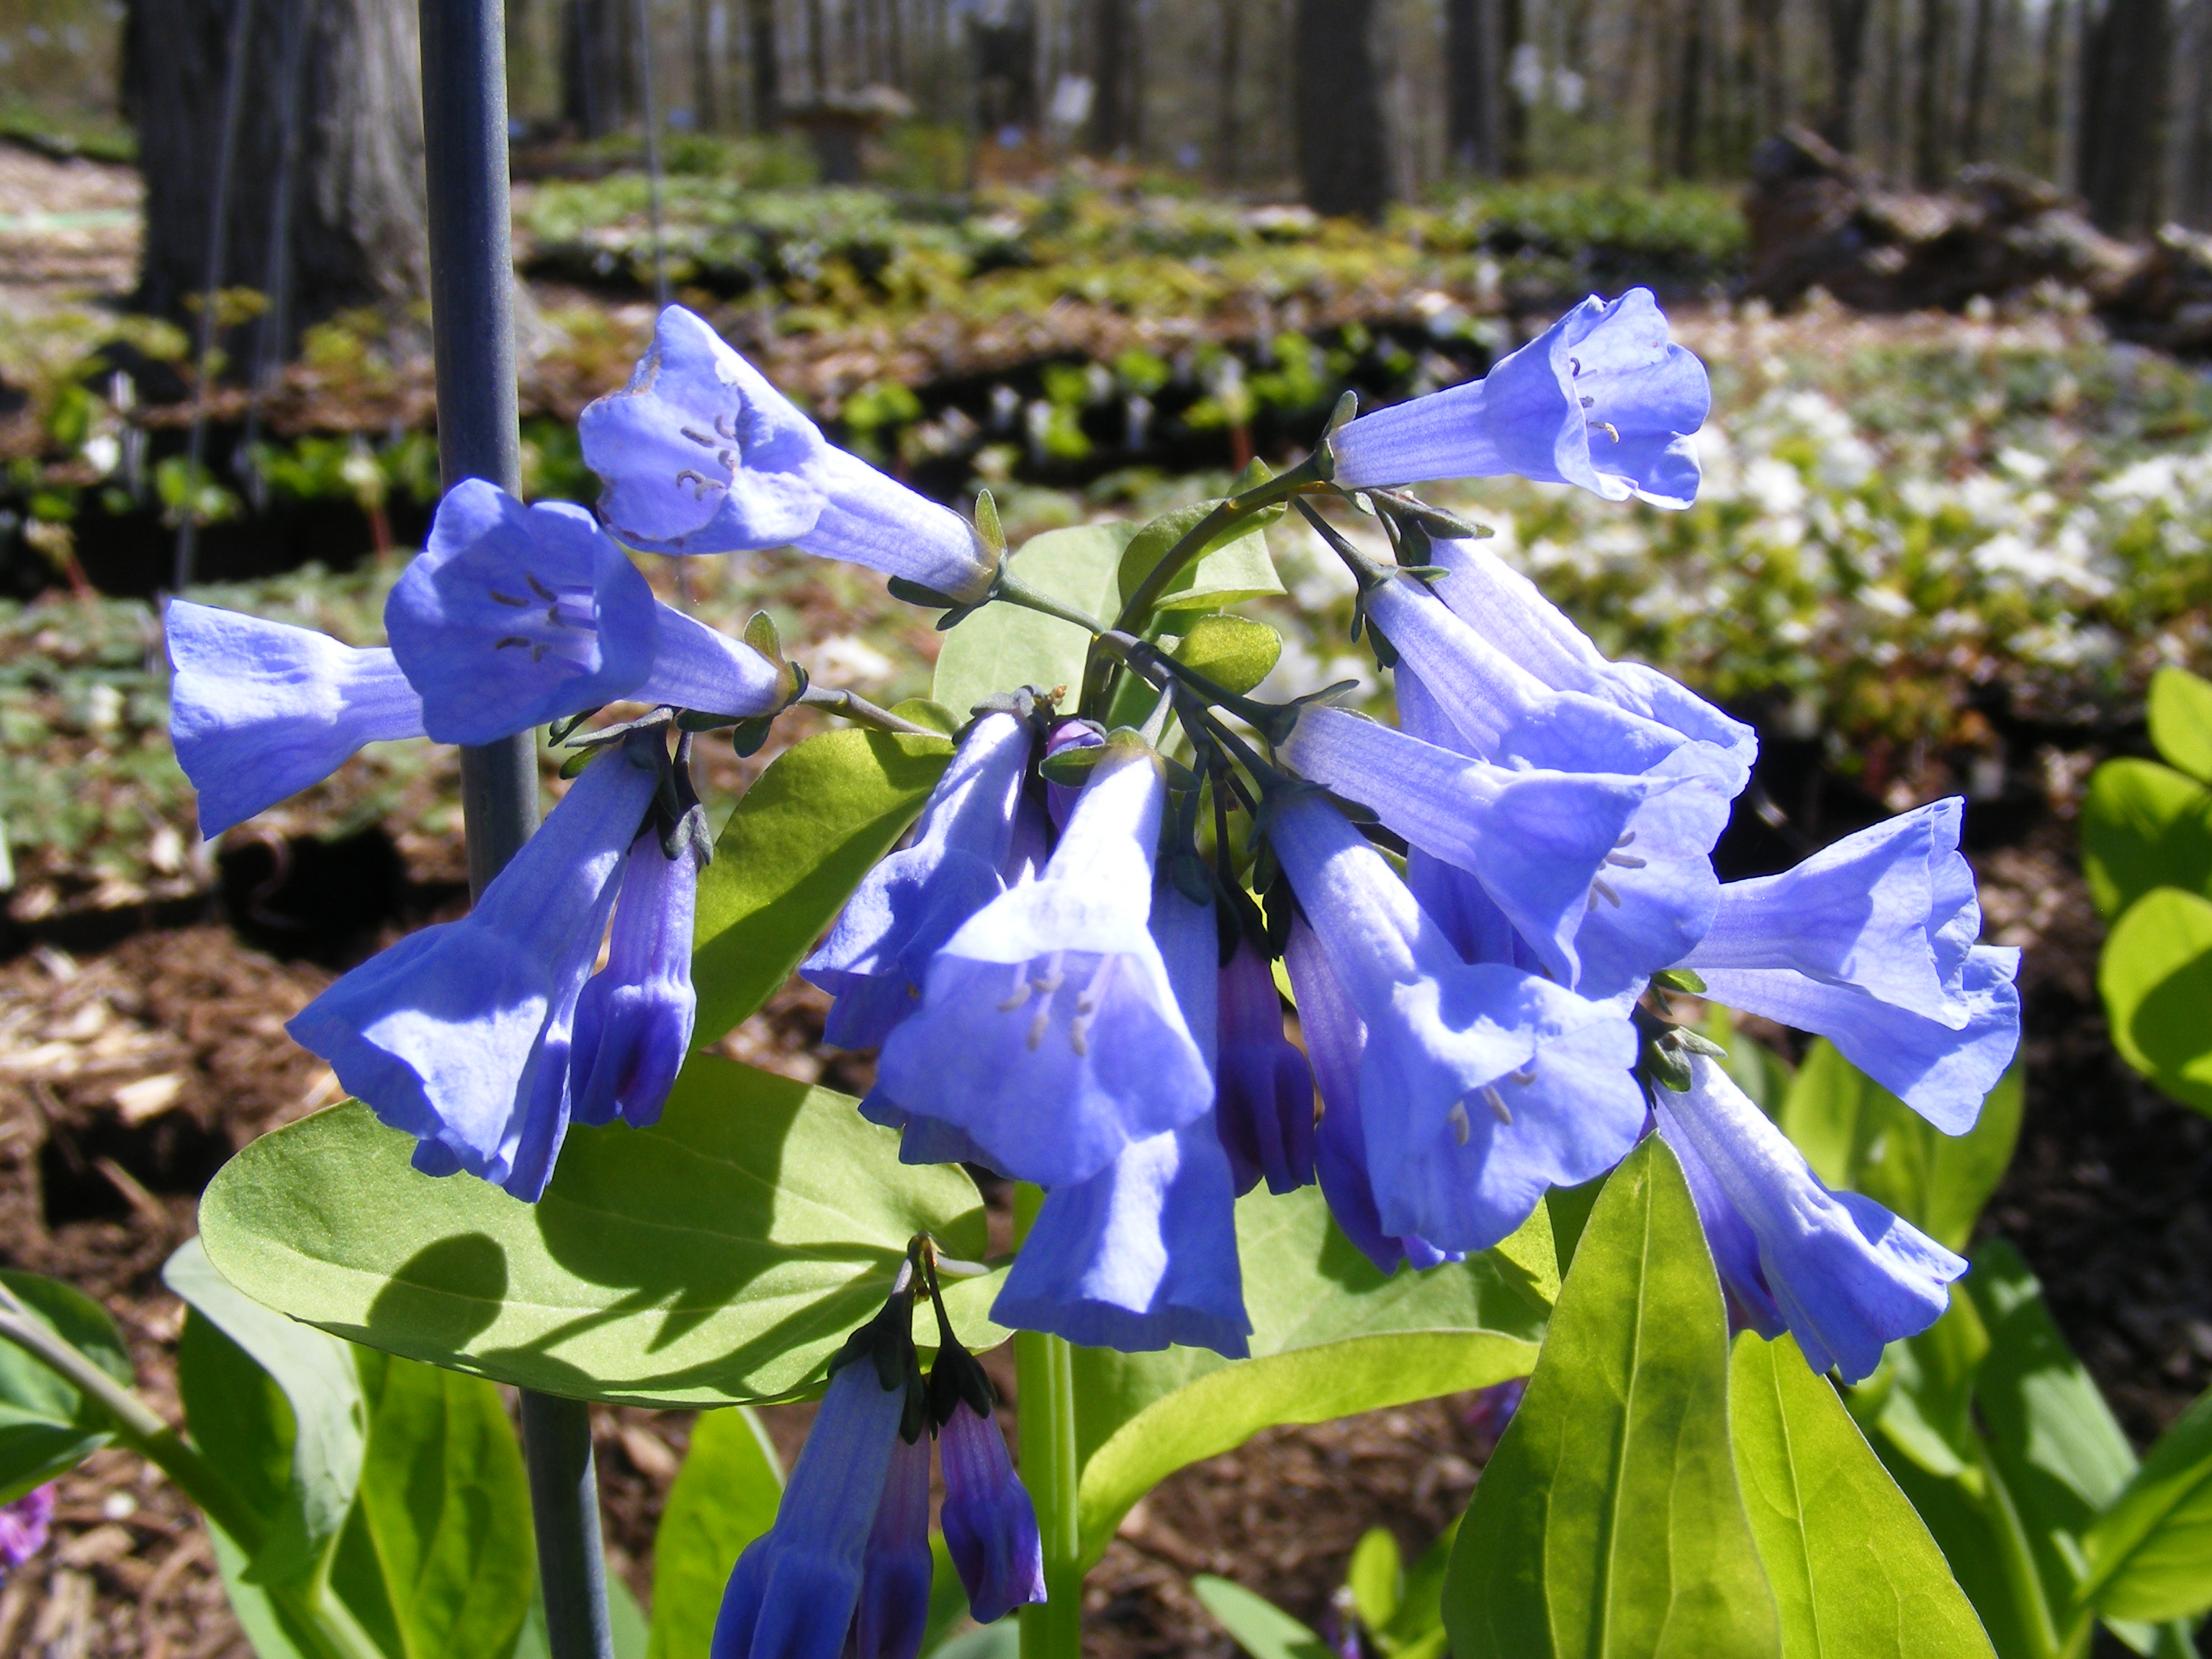 Eastern bluebell